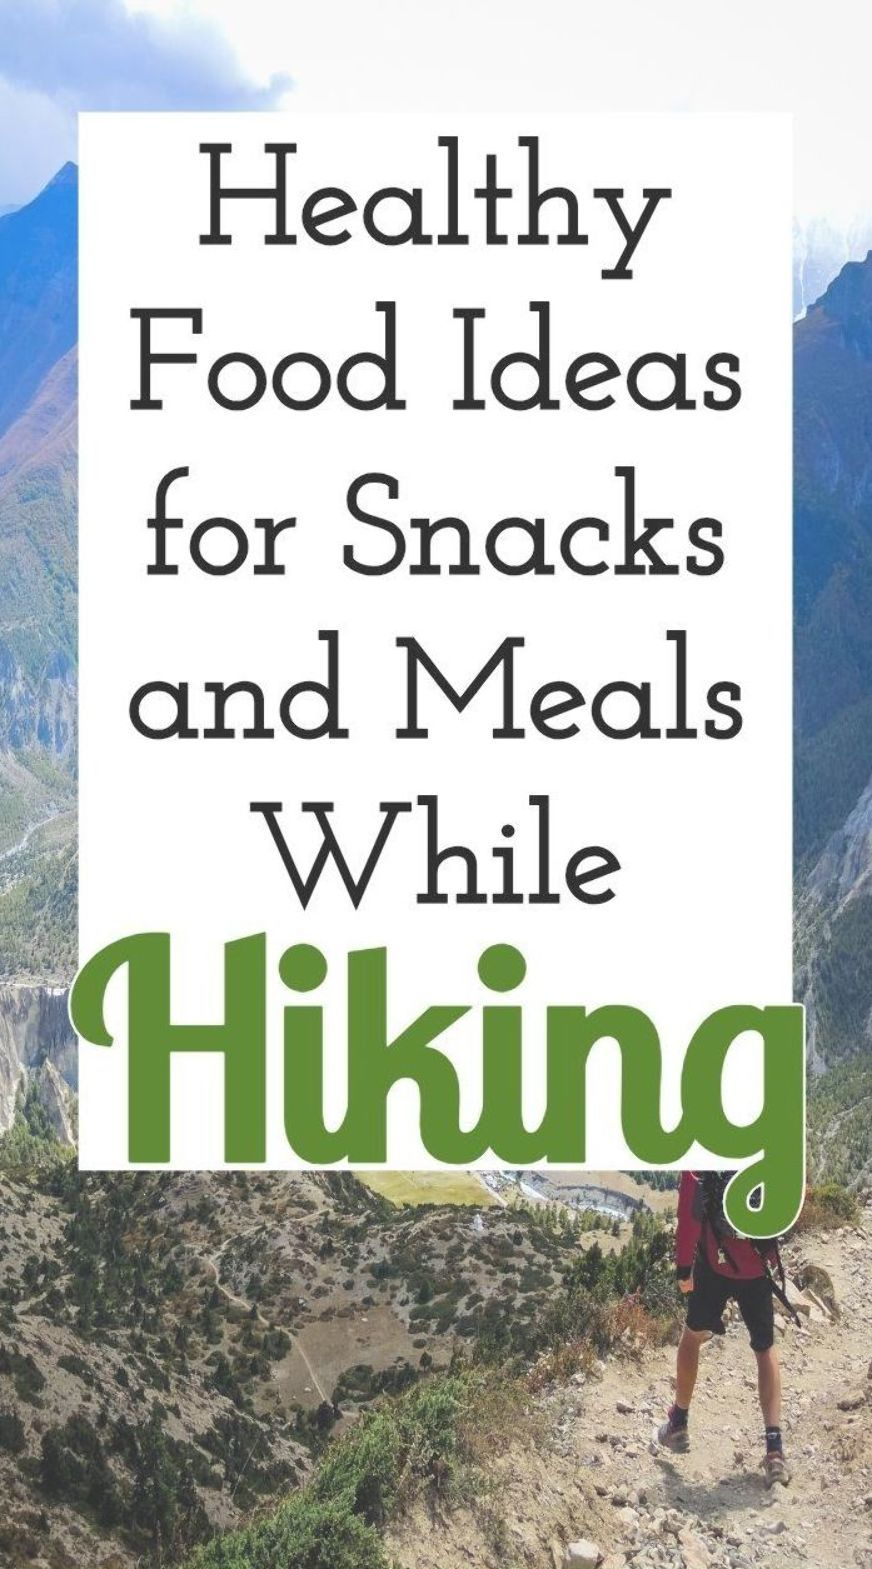 Food becomes so important when we travel outdoors. So, we have created a complete list of healthy f